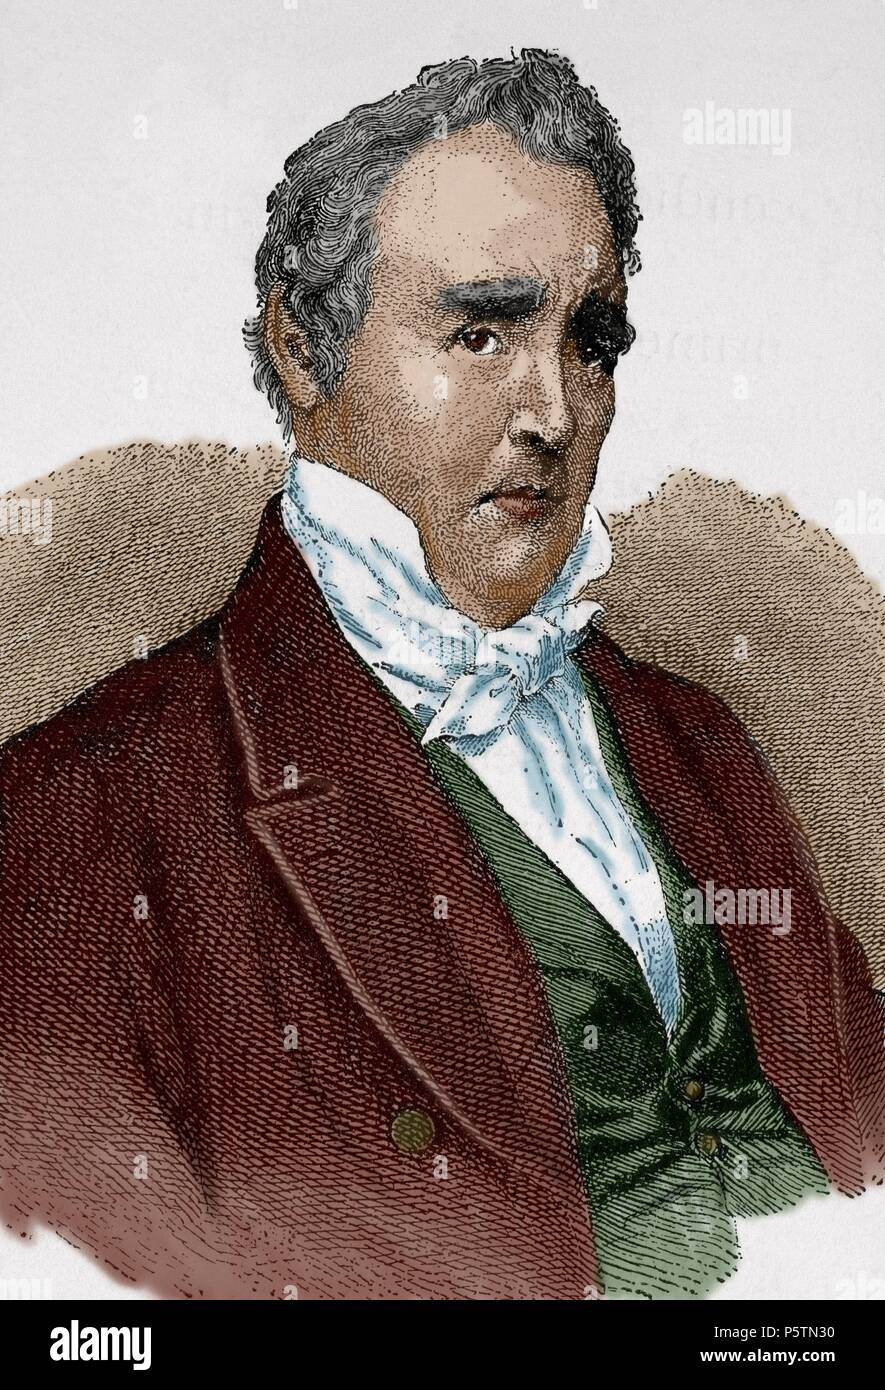 James Buchanan (1791-1868). American politician. 15th President of the United States (1857-1861). Engraving in World History, 1885. Colored. - Stock Image